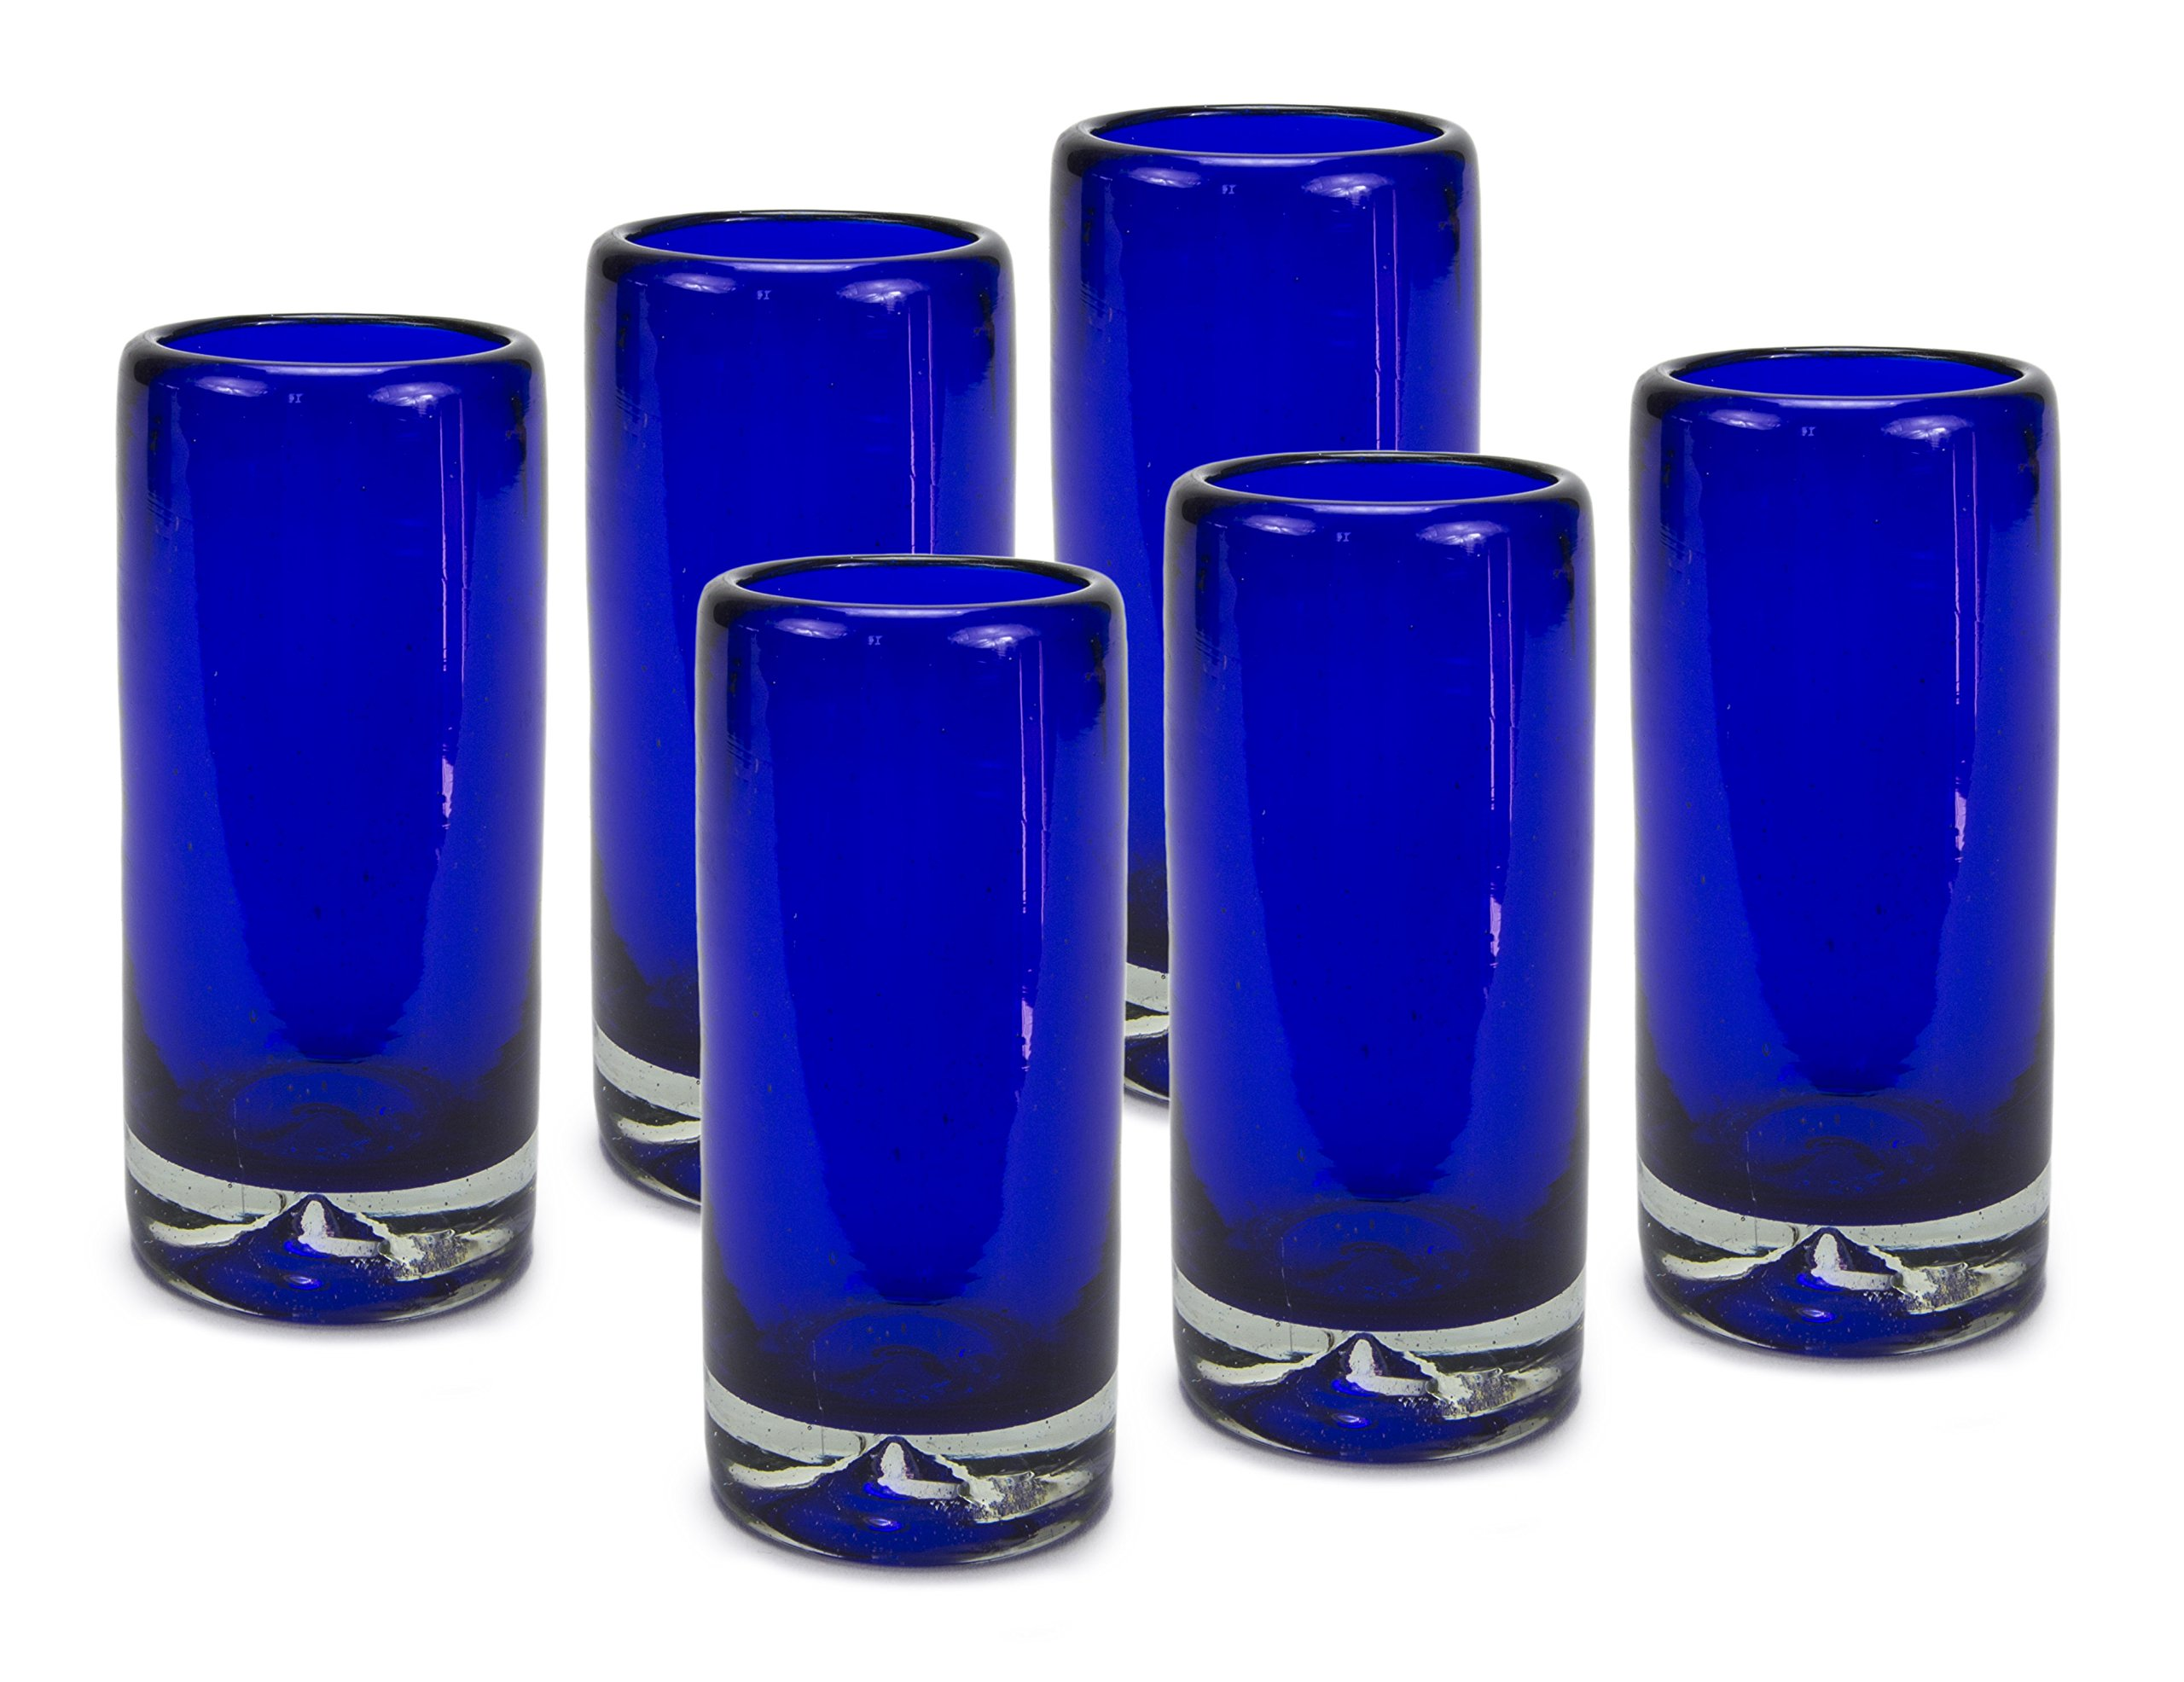 MEXART Artisan Crafted Hand Blown Solid Blue Recycled Glass Shots Glasses, 2 oz. 'Classic' (set of 6)